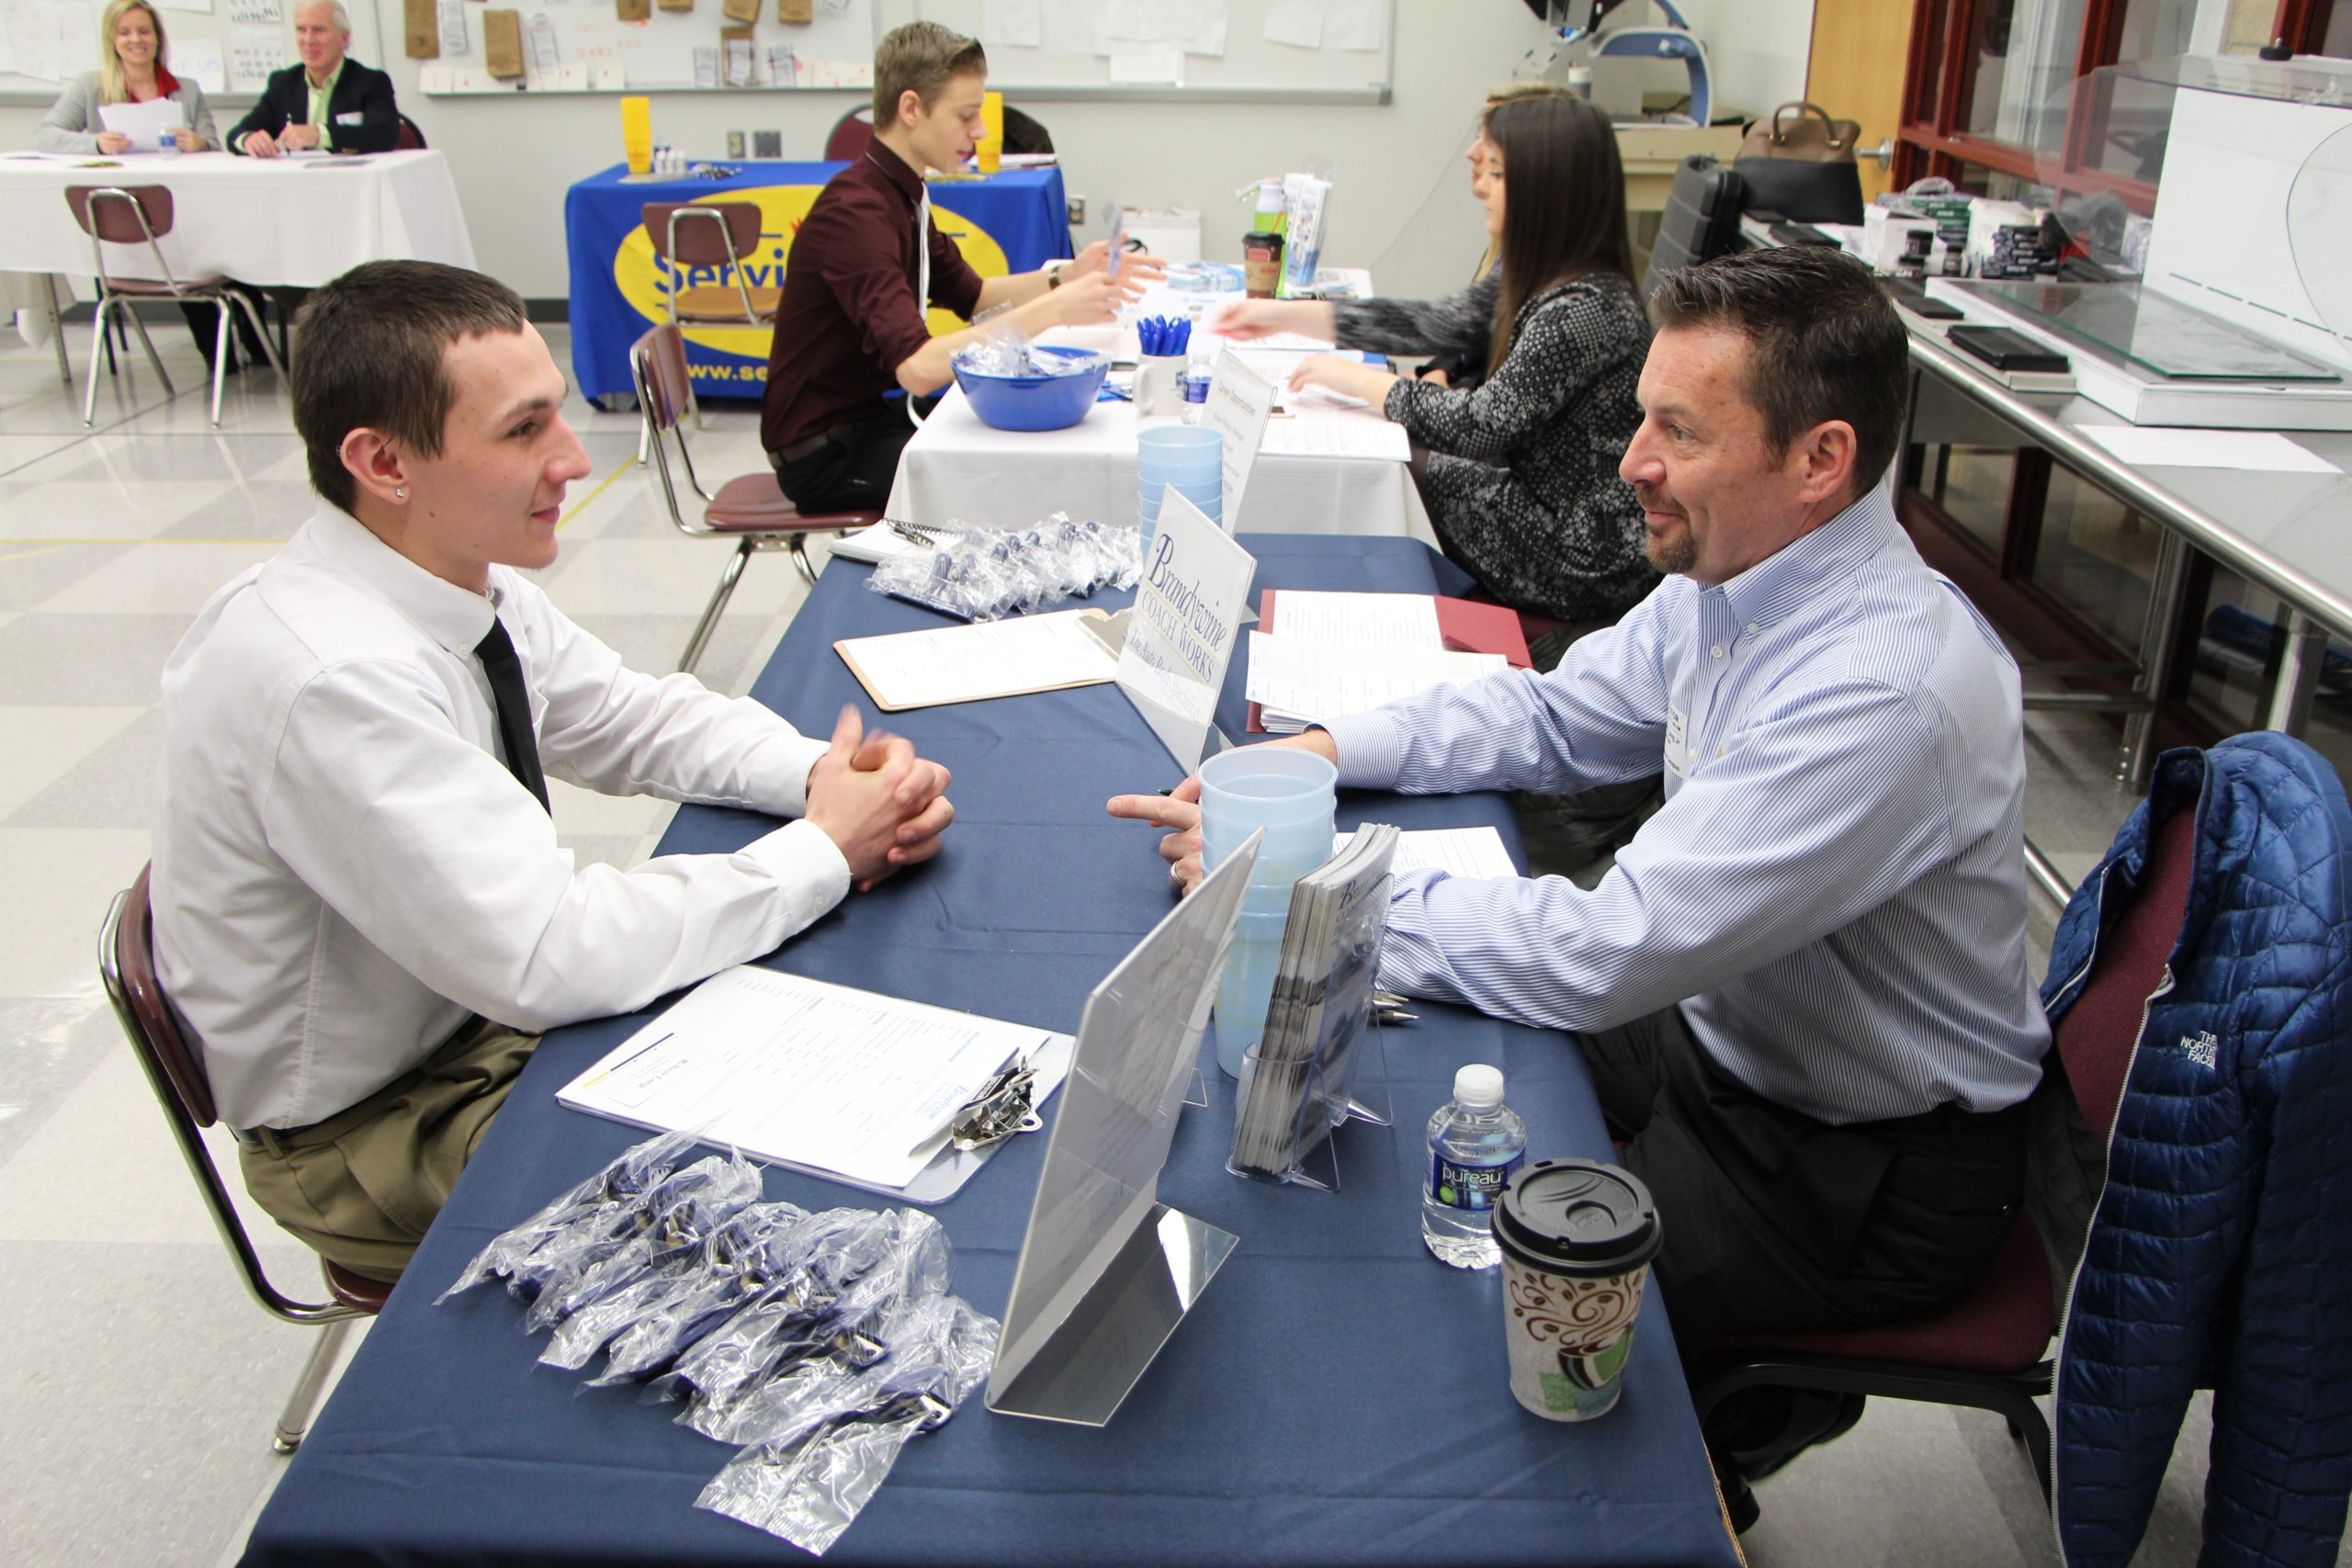 TCHS Brandywine's Career and Training Fair a Win-Win for Students, Employers